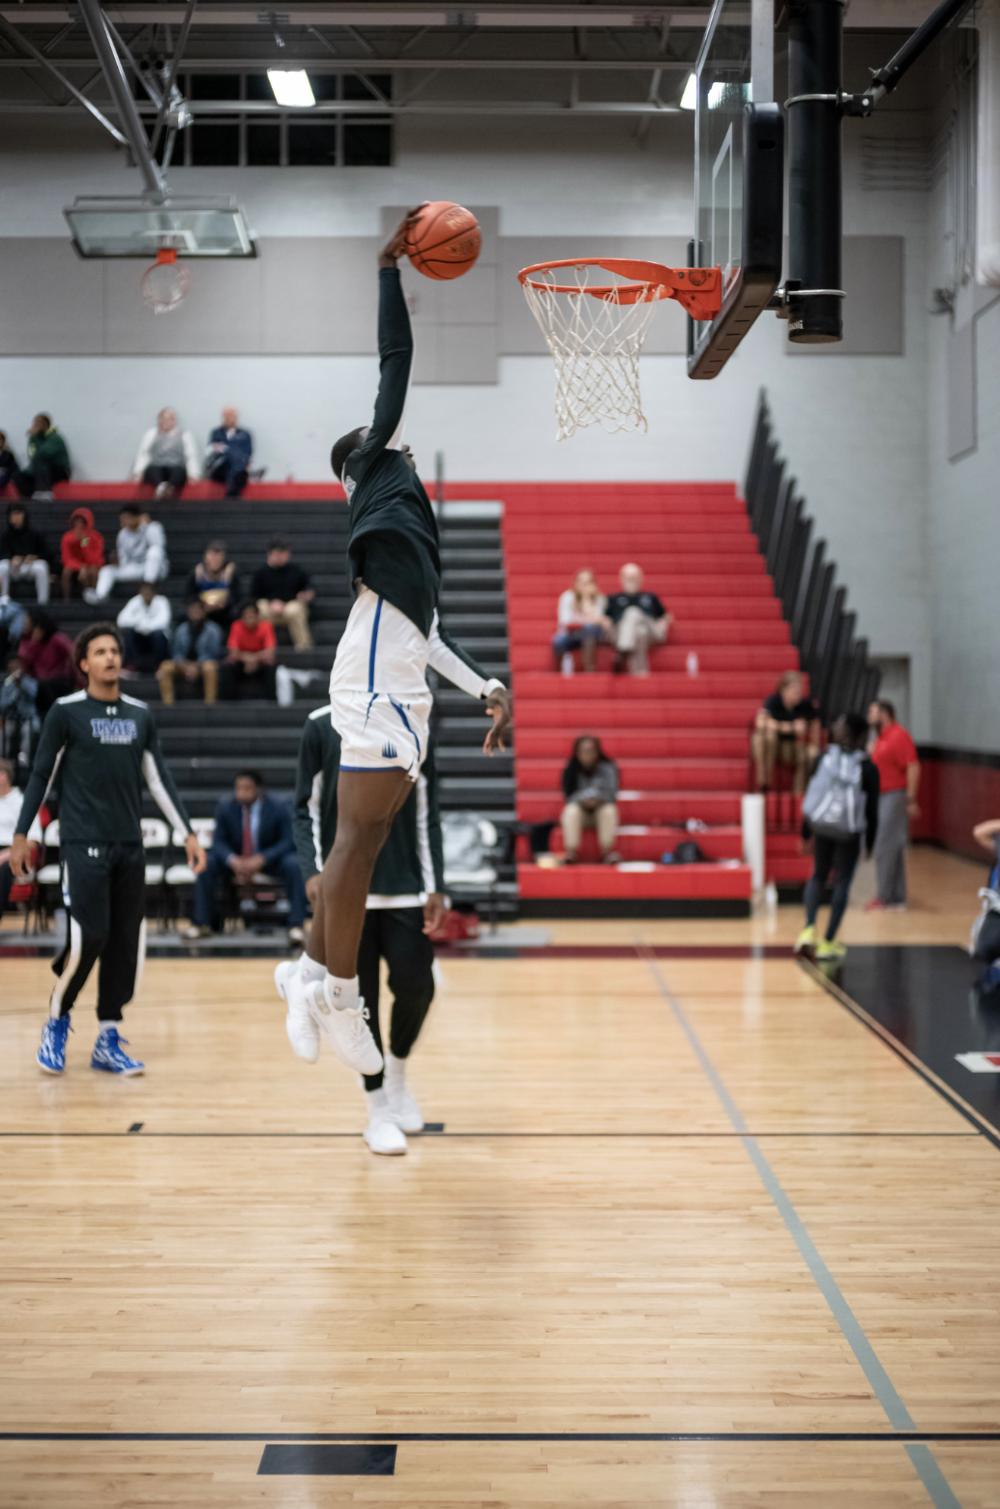 Dunks, Dunks & More Dunks - The inaugural Battle at the Rock Basketball Showcase was a smash. Sold out crowds, Allen Iverson, and a slew of the top High School Basketball Players in the country. Battle At The Rock 2019 is coming to Rock Hill.Photos From Day 1:Photos From Day 2: